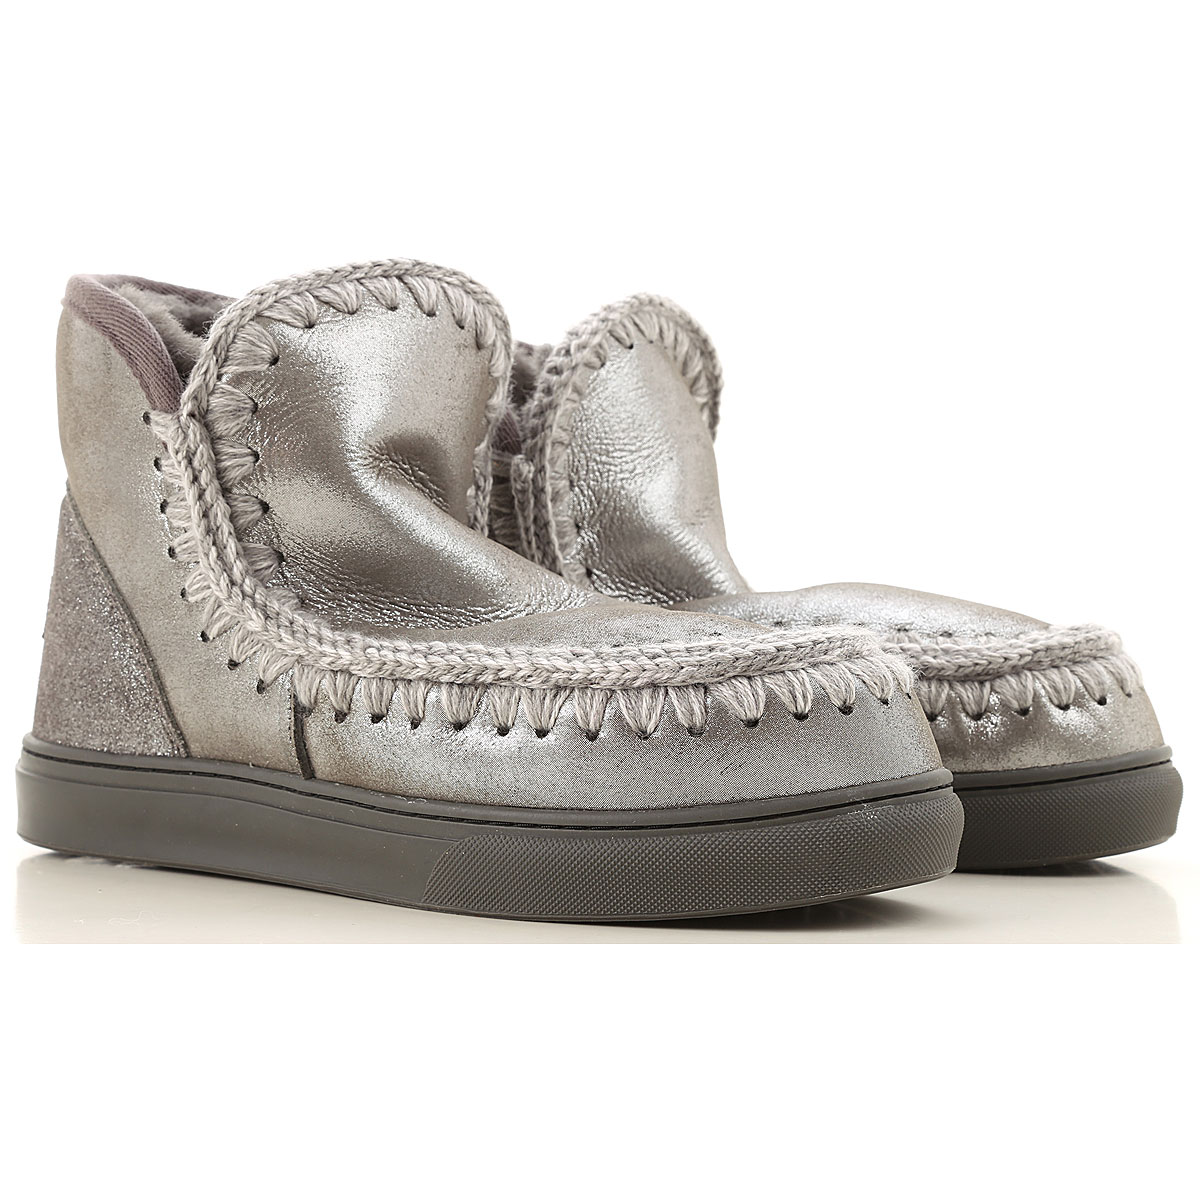 Mou Boots for Women, Booties On Sale, Silver, Leather, 2019, EUR 38 - UK 5 - USA 7 EUR 36 - UK 3 - USA 5.5 EUR 37 - UK 4 - USA 6.5 EUR 39 - UK 6 - USA